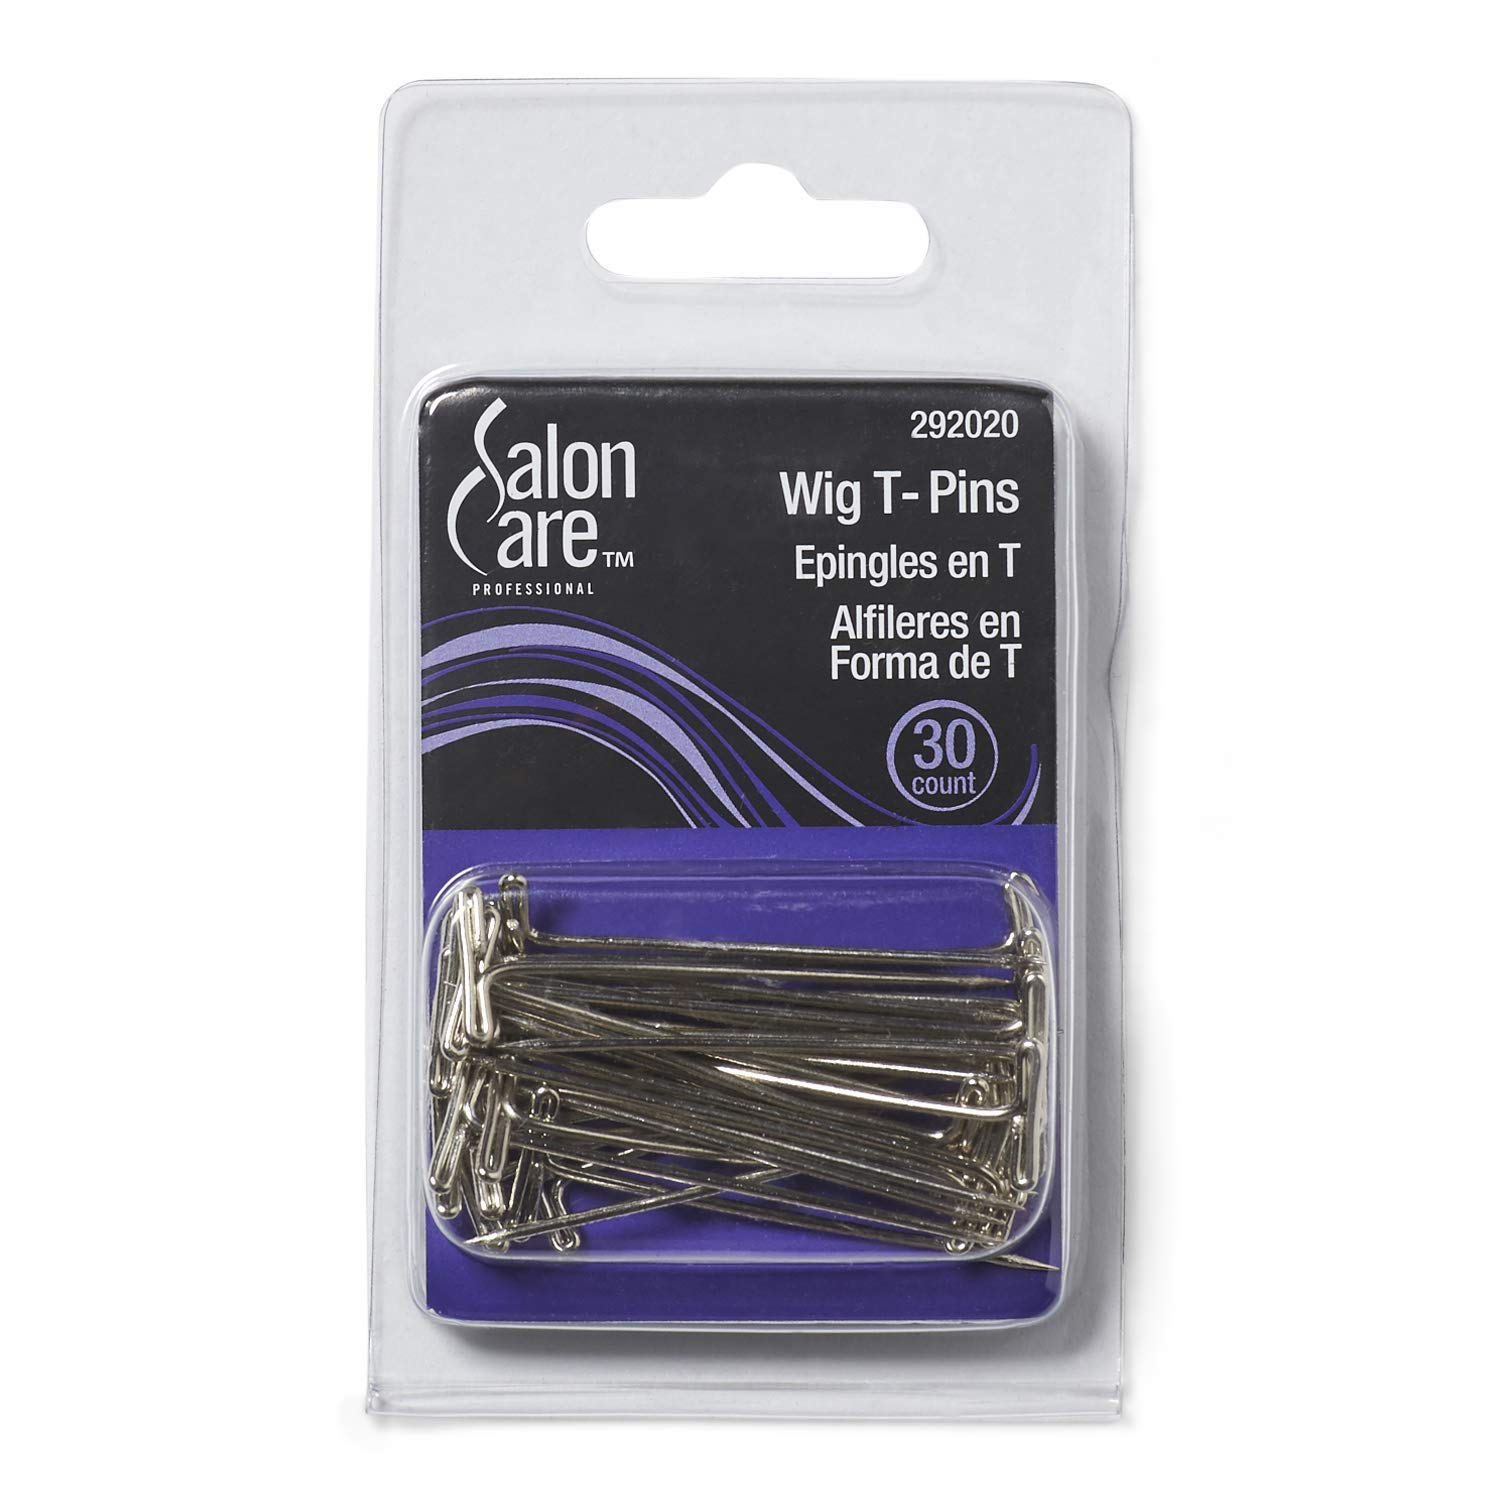 Salon Care Steel Wig T Pins